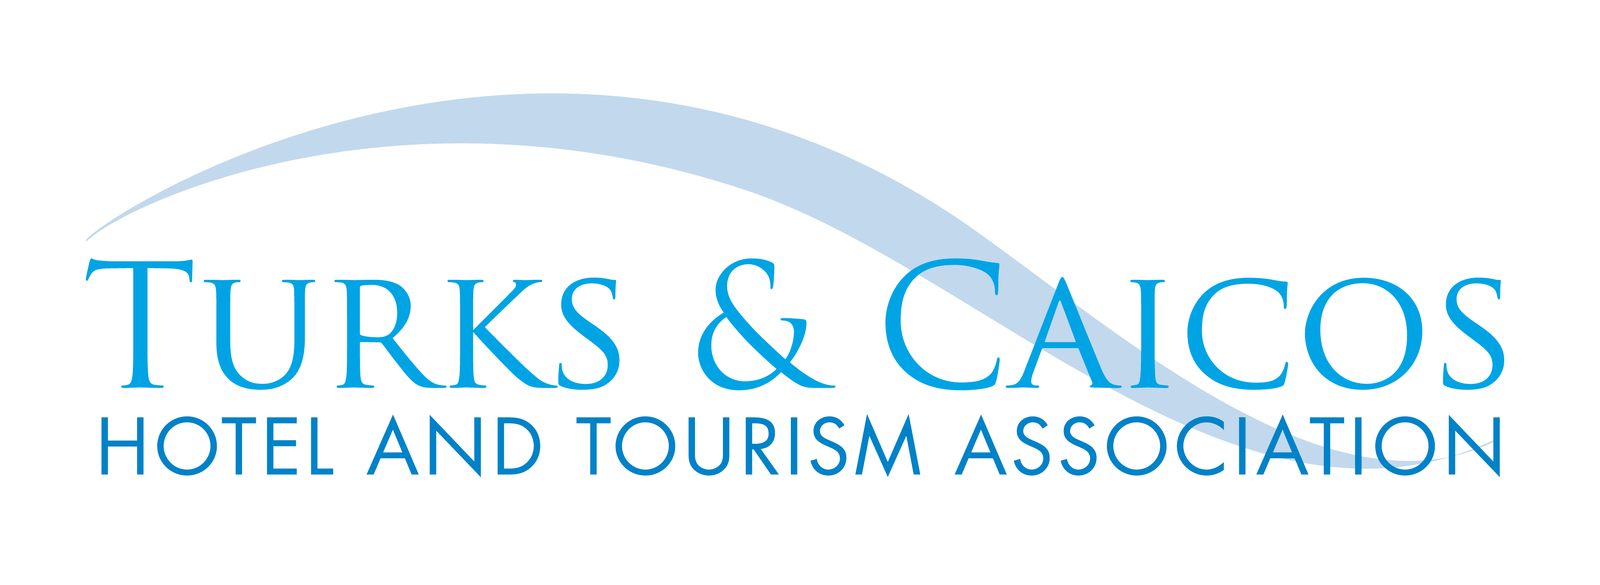 Turks & Caicos Hotel and Tourism Association